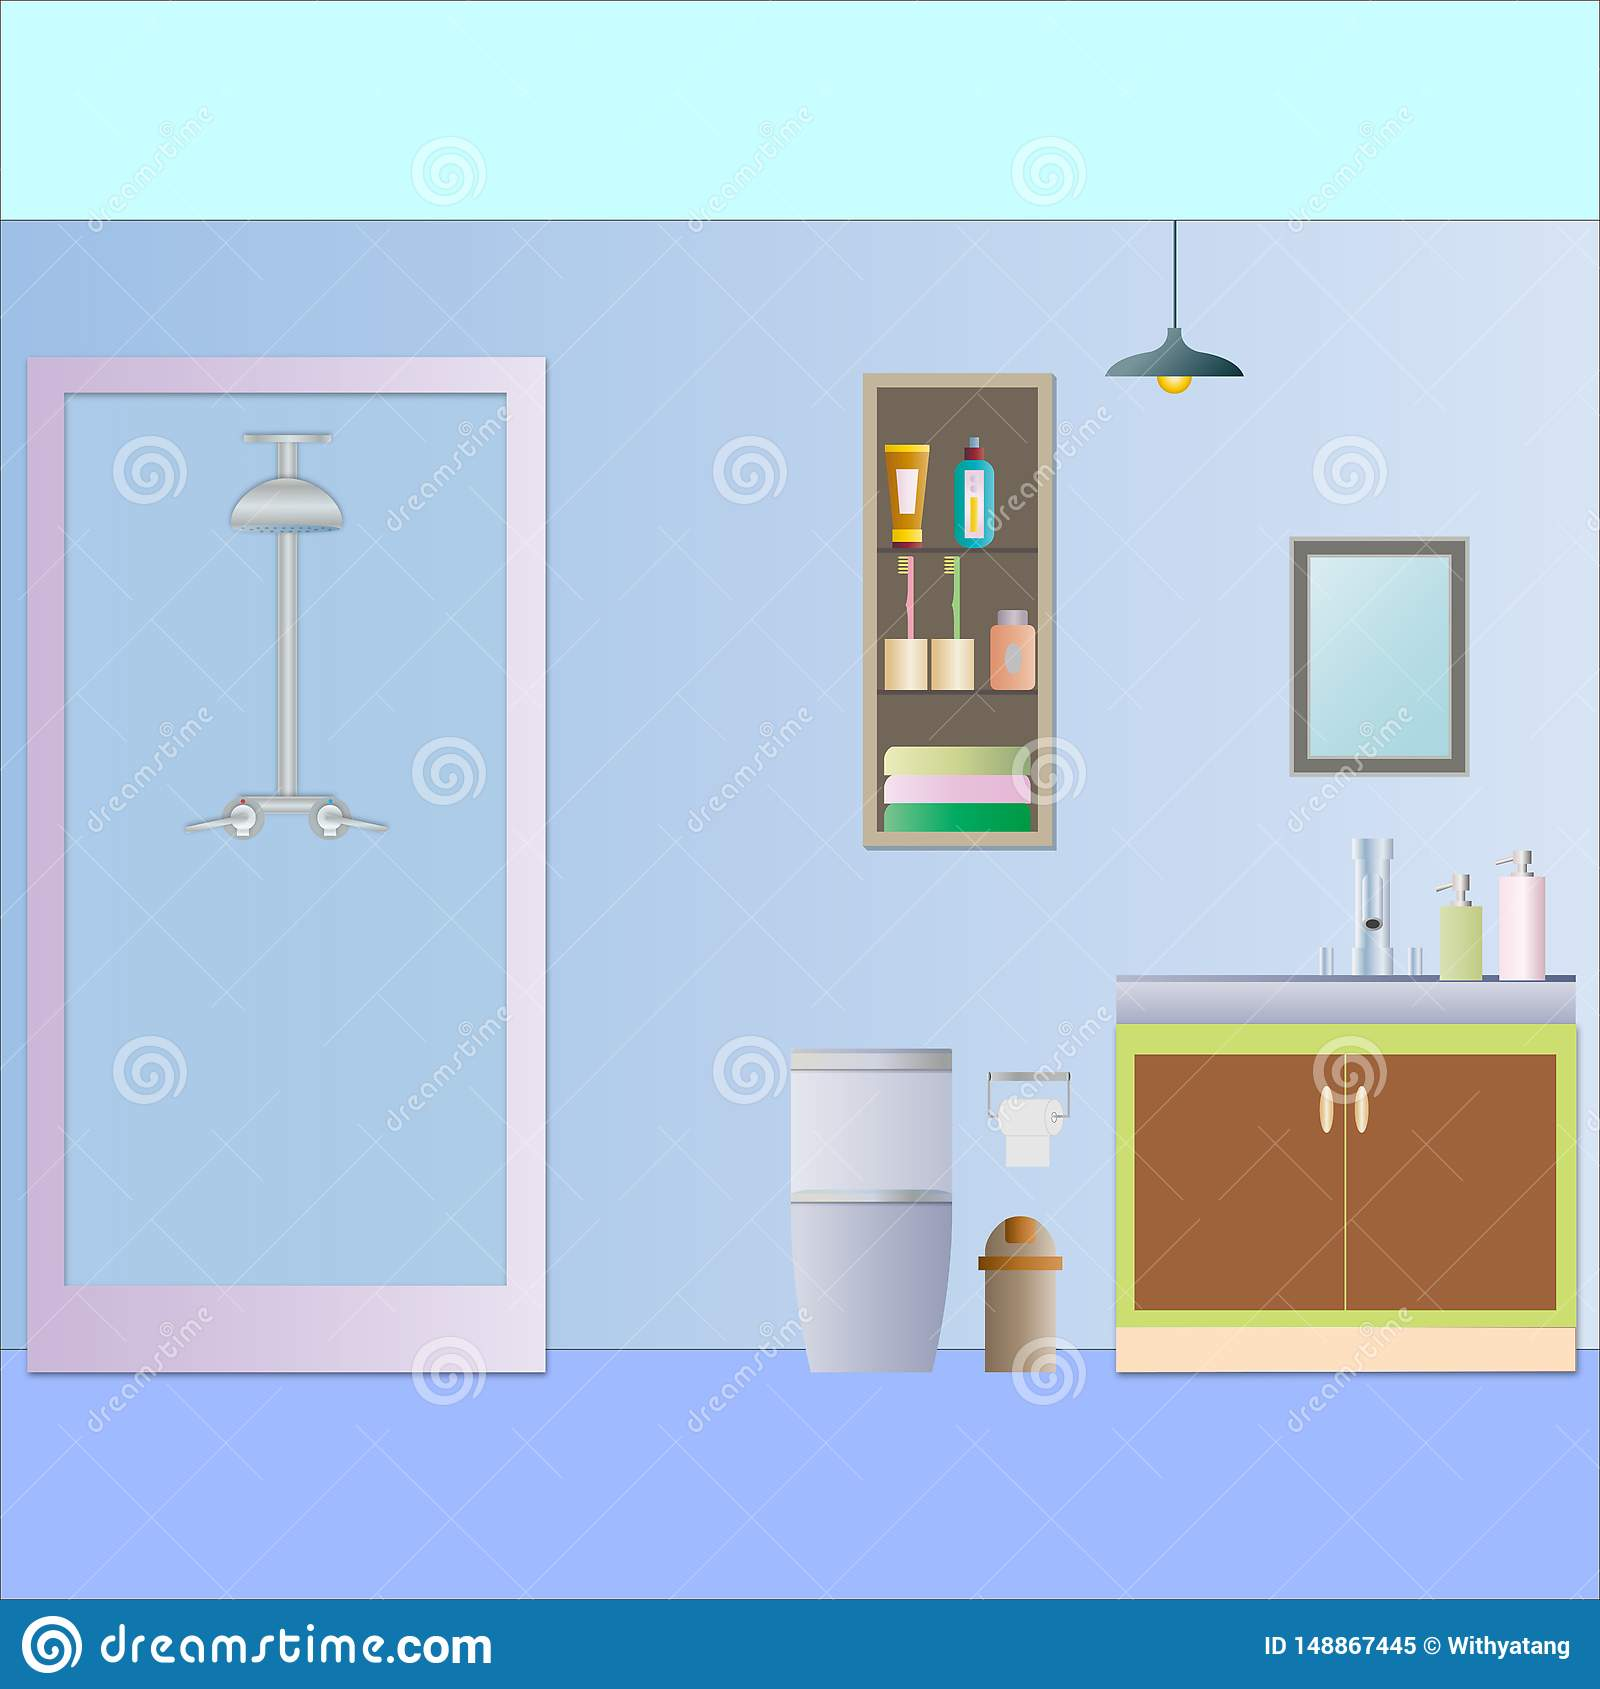 Bathroom with stall shower vector illustration.